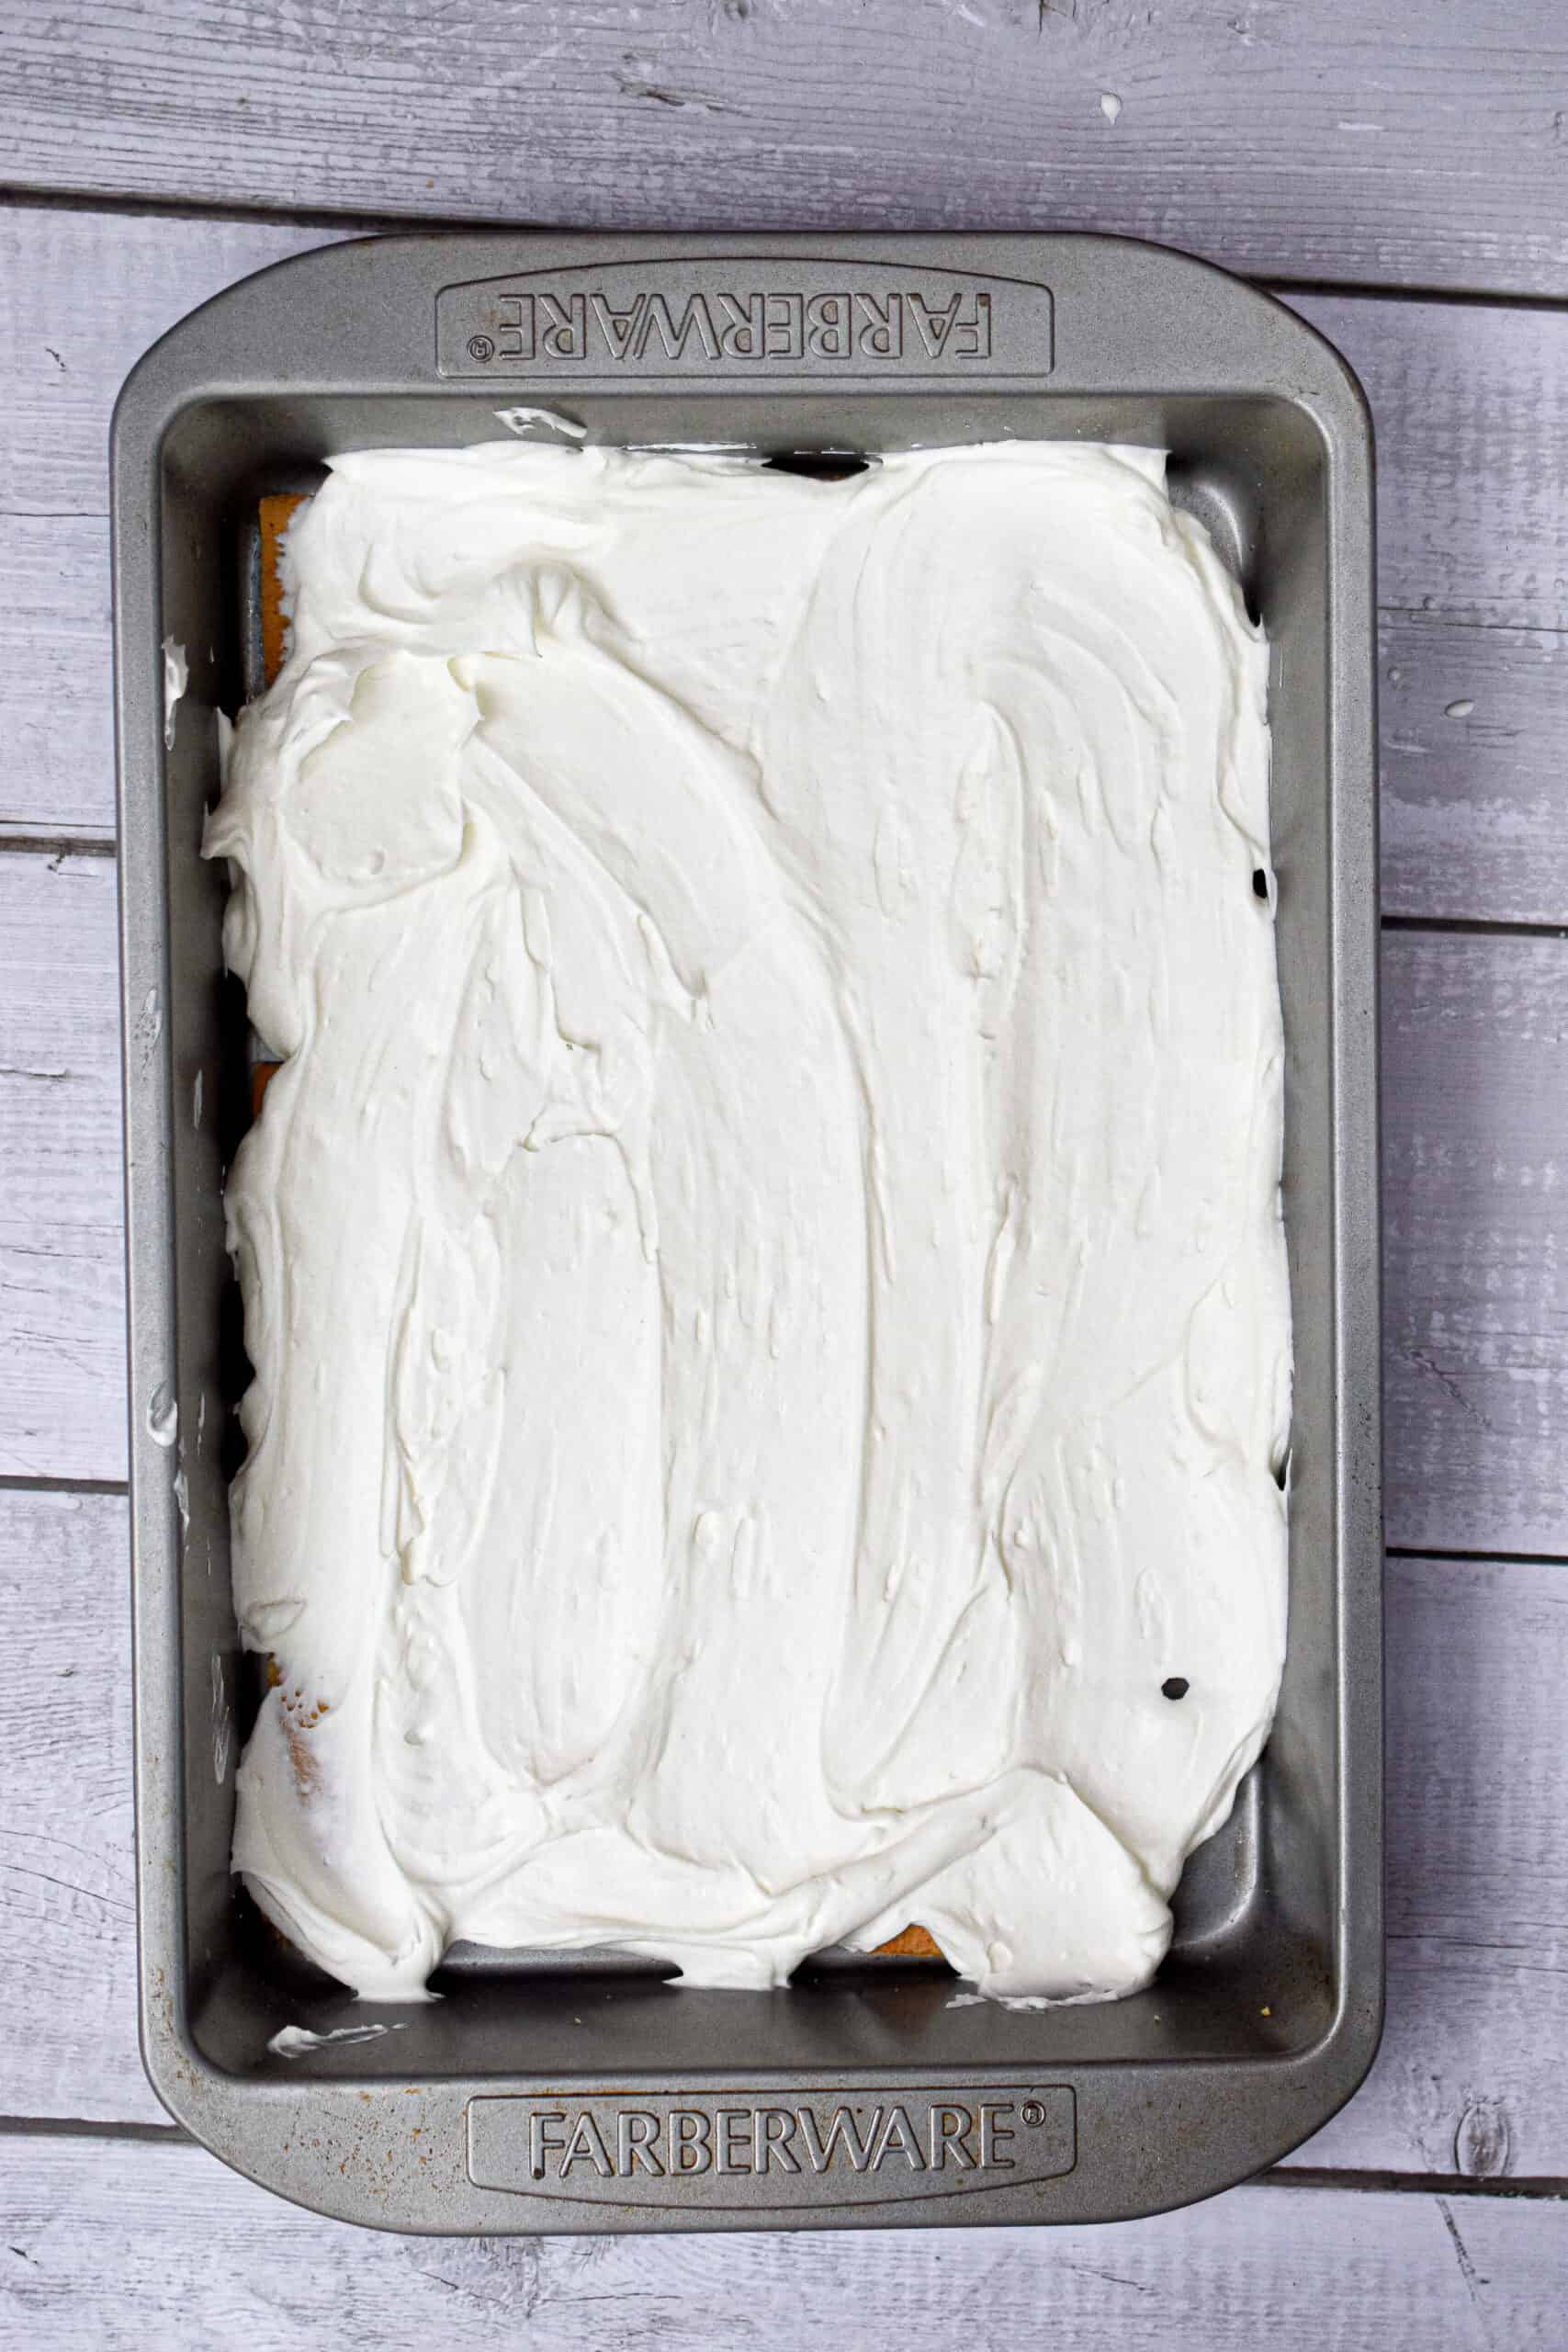 Top the graham crackers with the cream cheese and whipped cream mixture